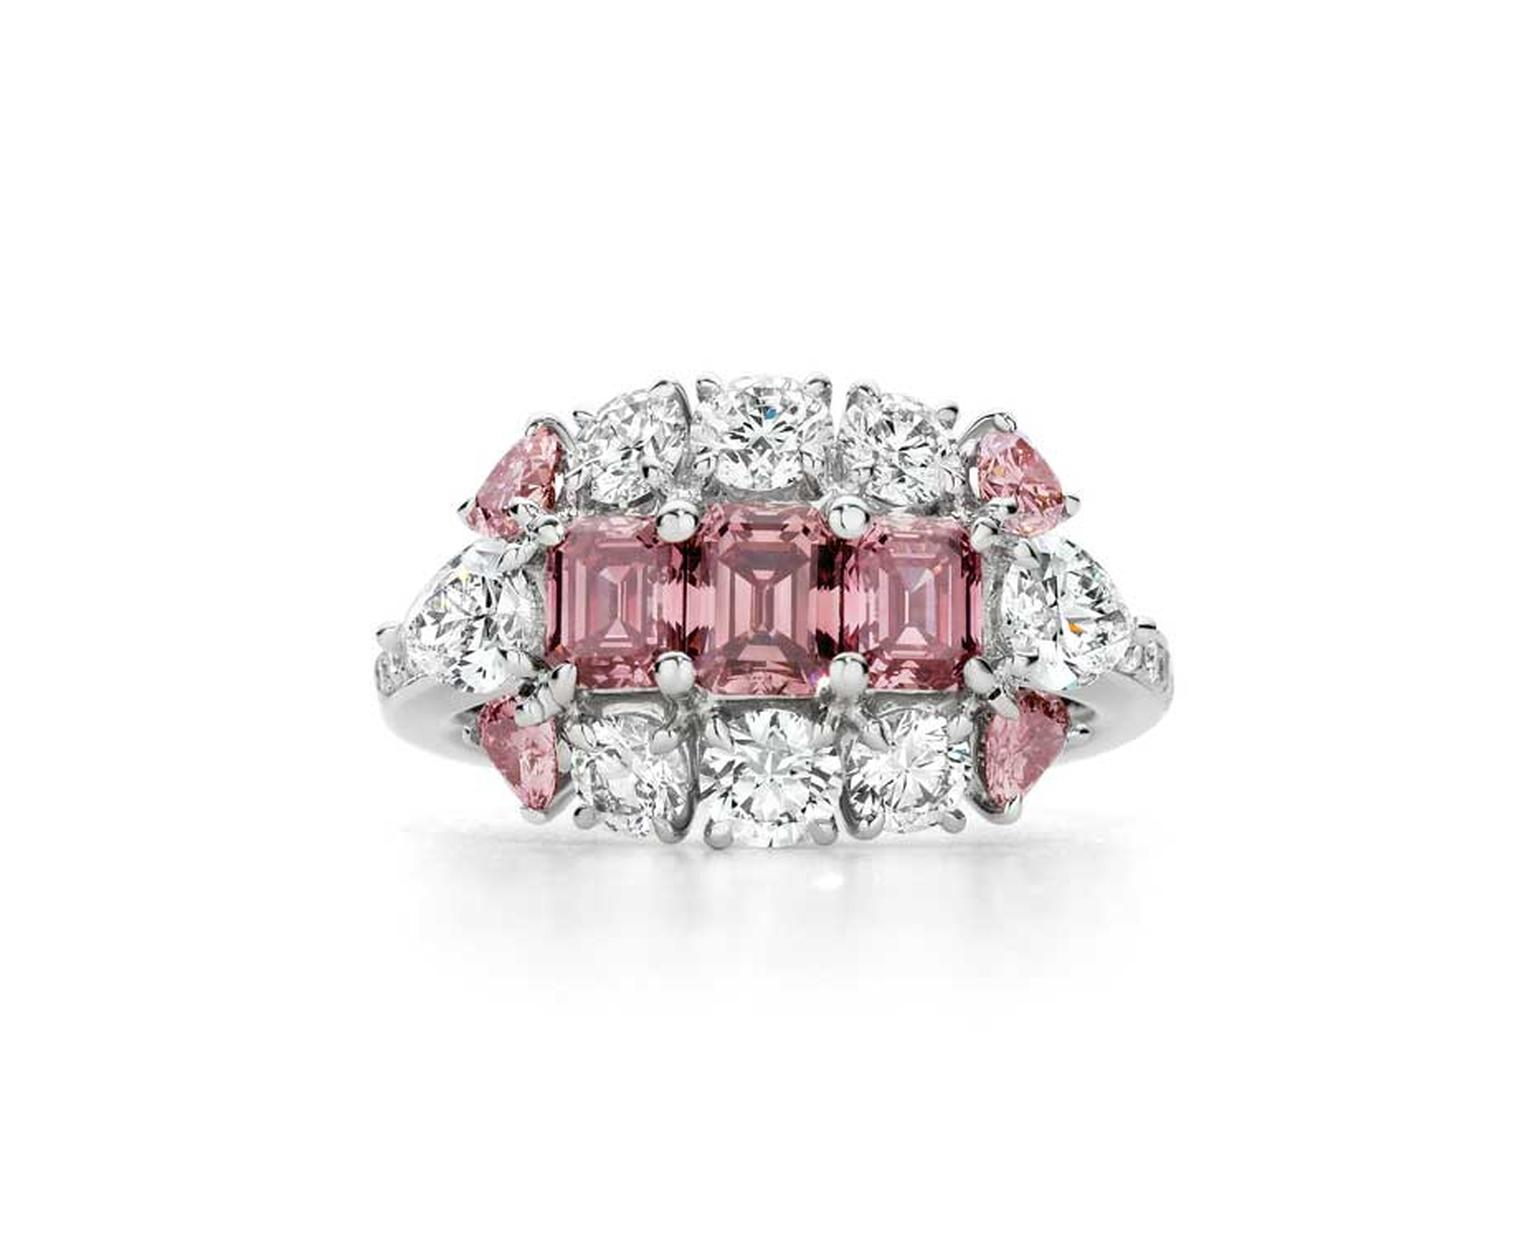 J. Farren-Price Trilogy ring, set with a trio of step-cut Argyle pink diamonds, available at www.jfarrenprice.com.au.